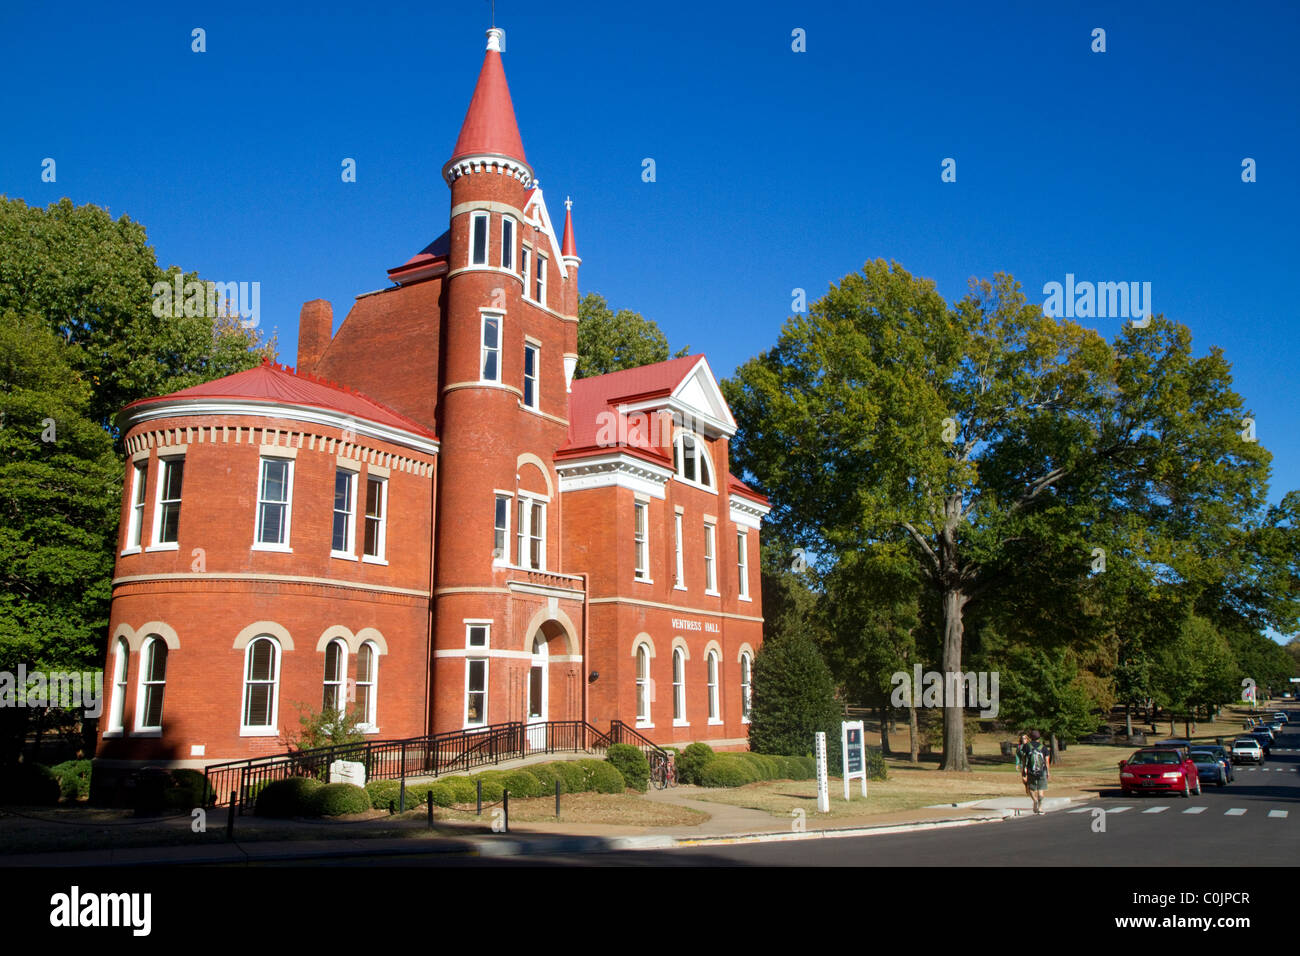 Ventress Hall on the University of Mississippi campus in Oxford, Mississippi, USA. - Stock Image